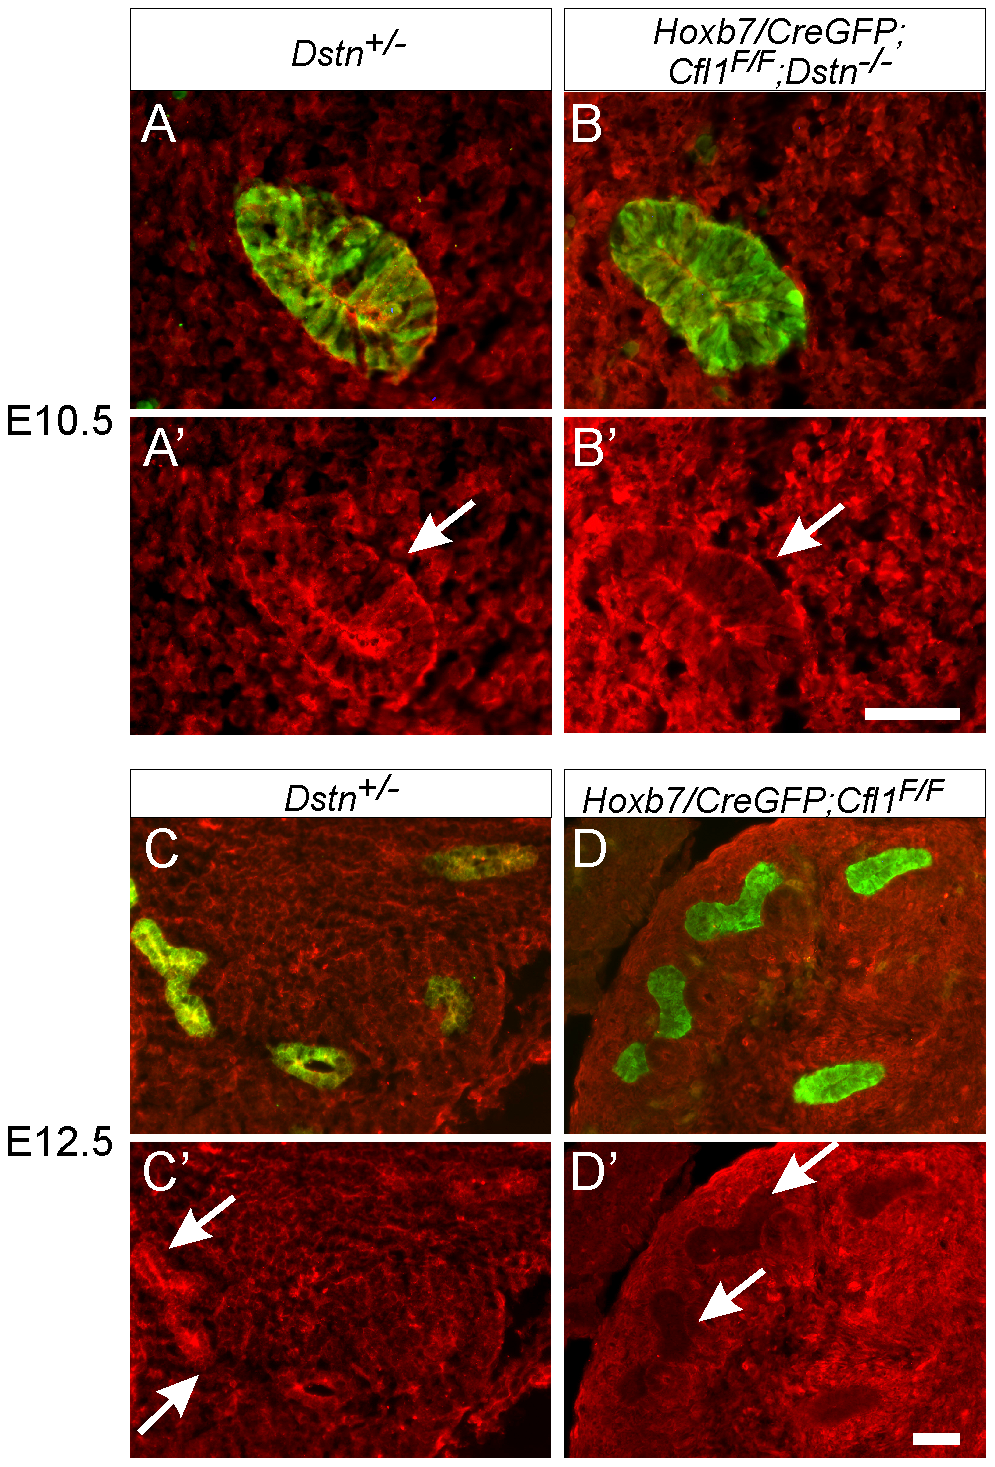 Efficiency of <i>Hoxb7/CreGFP</i>-mediated deletion of <i>Cfl1</i> as evaluated by Cofilin1 antibody staining.